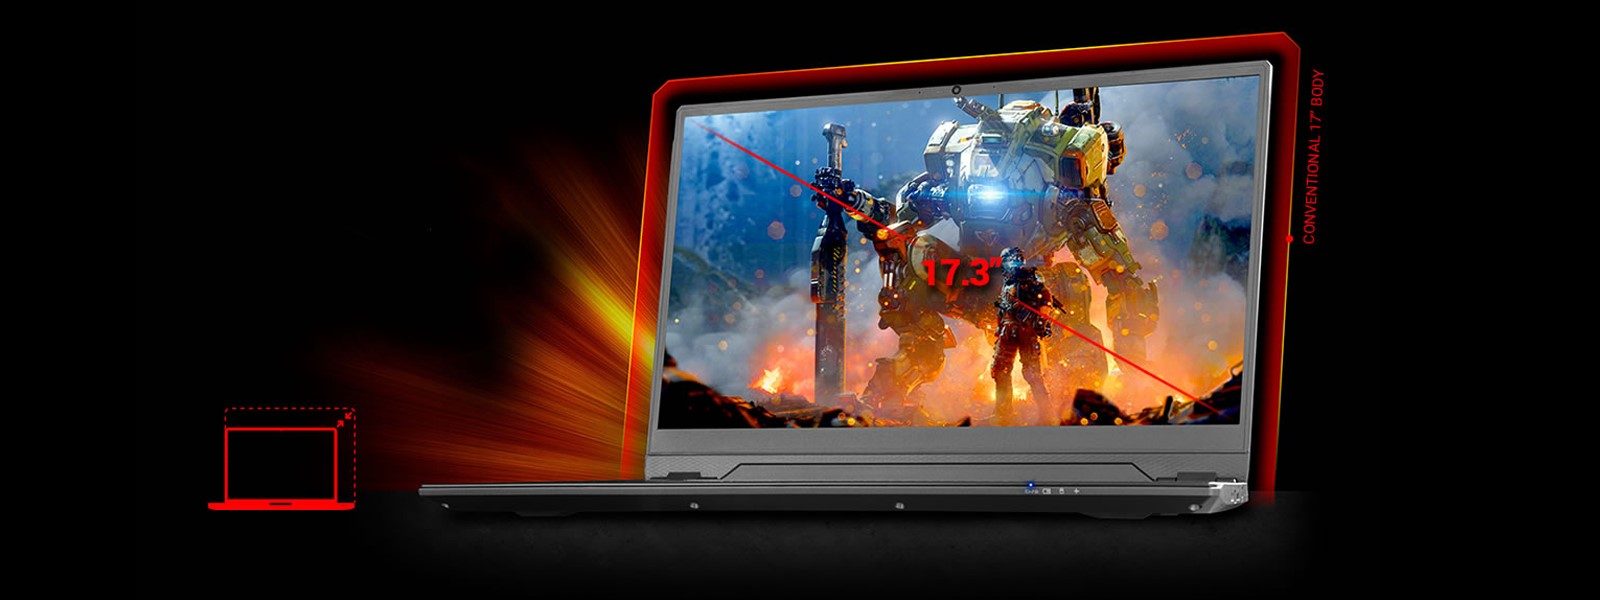 CLEVO-Computer-P970RN-NVIDIA-RTX-2080-Max-Q-Design-Intel-Core-9th-Gen-i7-9750H-Ultra-Slim-Gaming-Laptop-Custom-Notebook-Metal-Chassis-Features-Specification-1